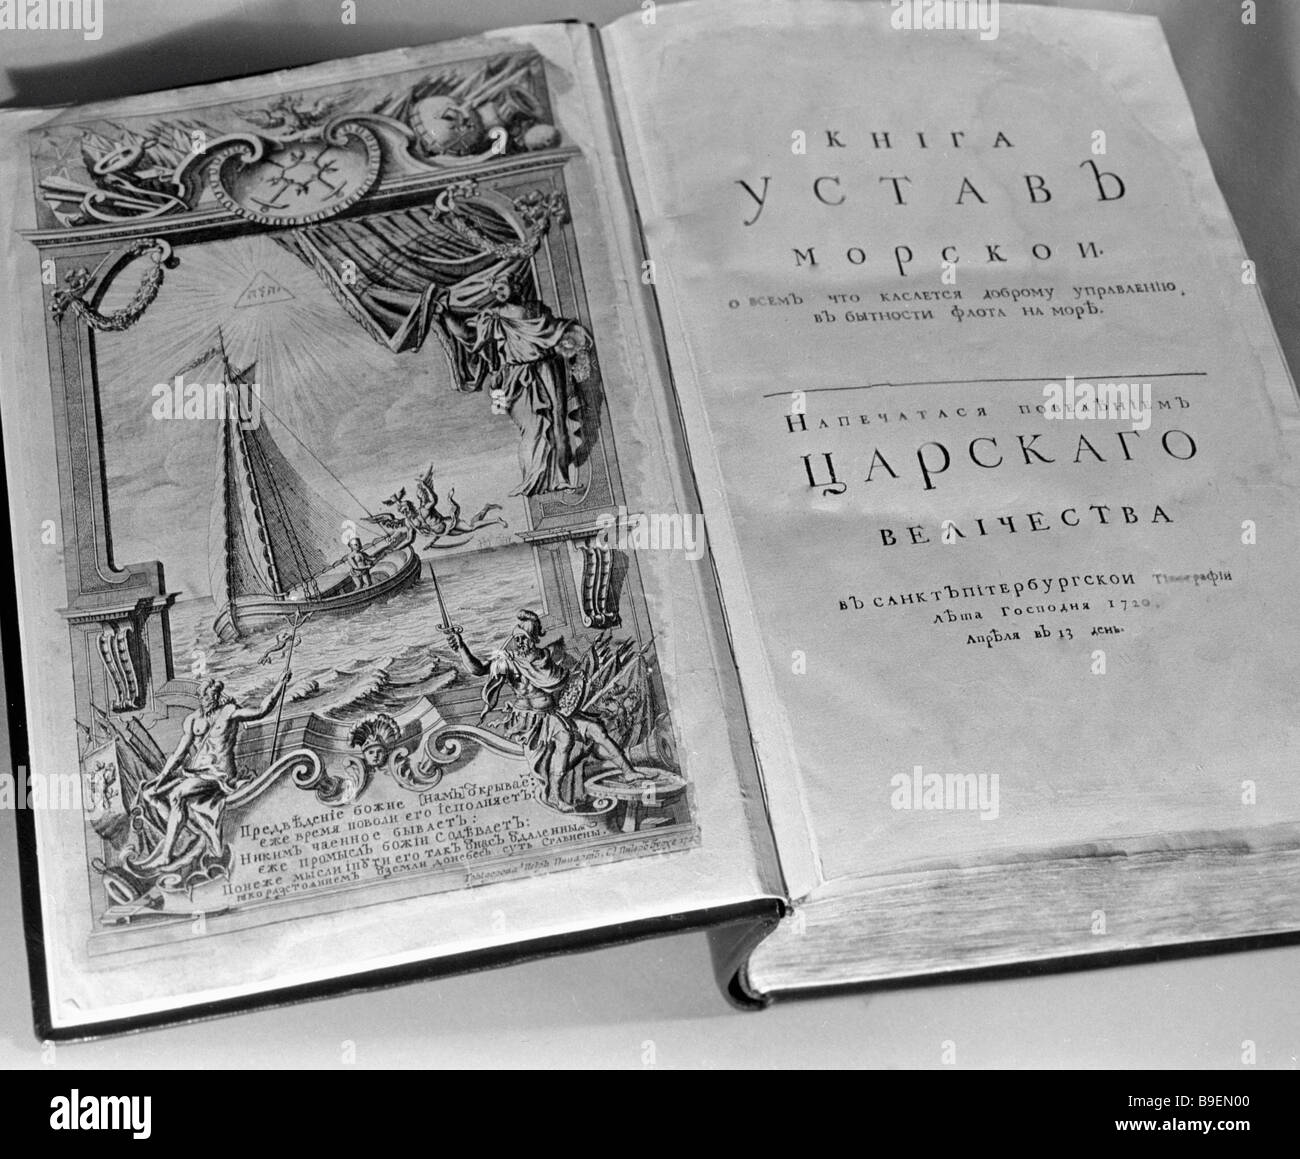 The book Ustav Morskoi Naval Regulations was written and edited by Peter the Great Collection of the State Library - Stock Image